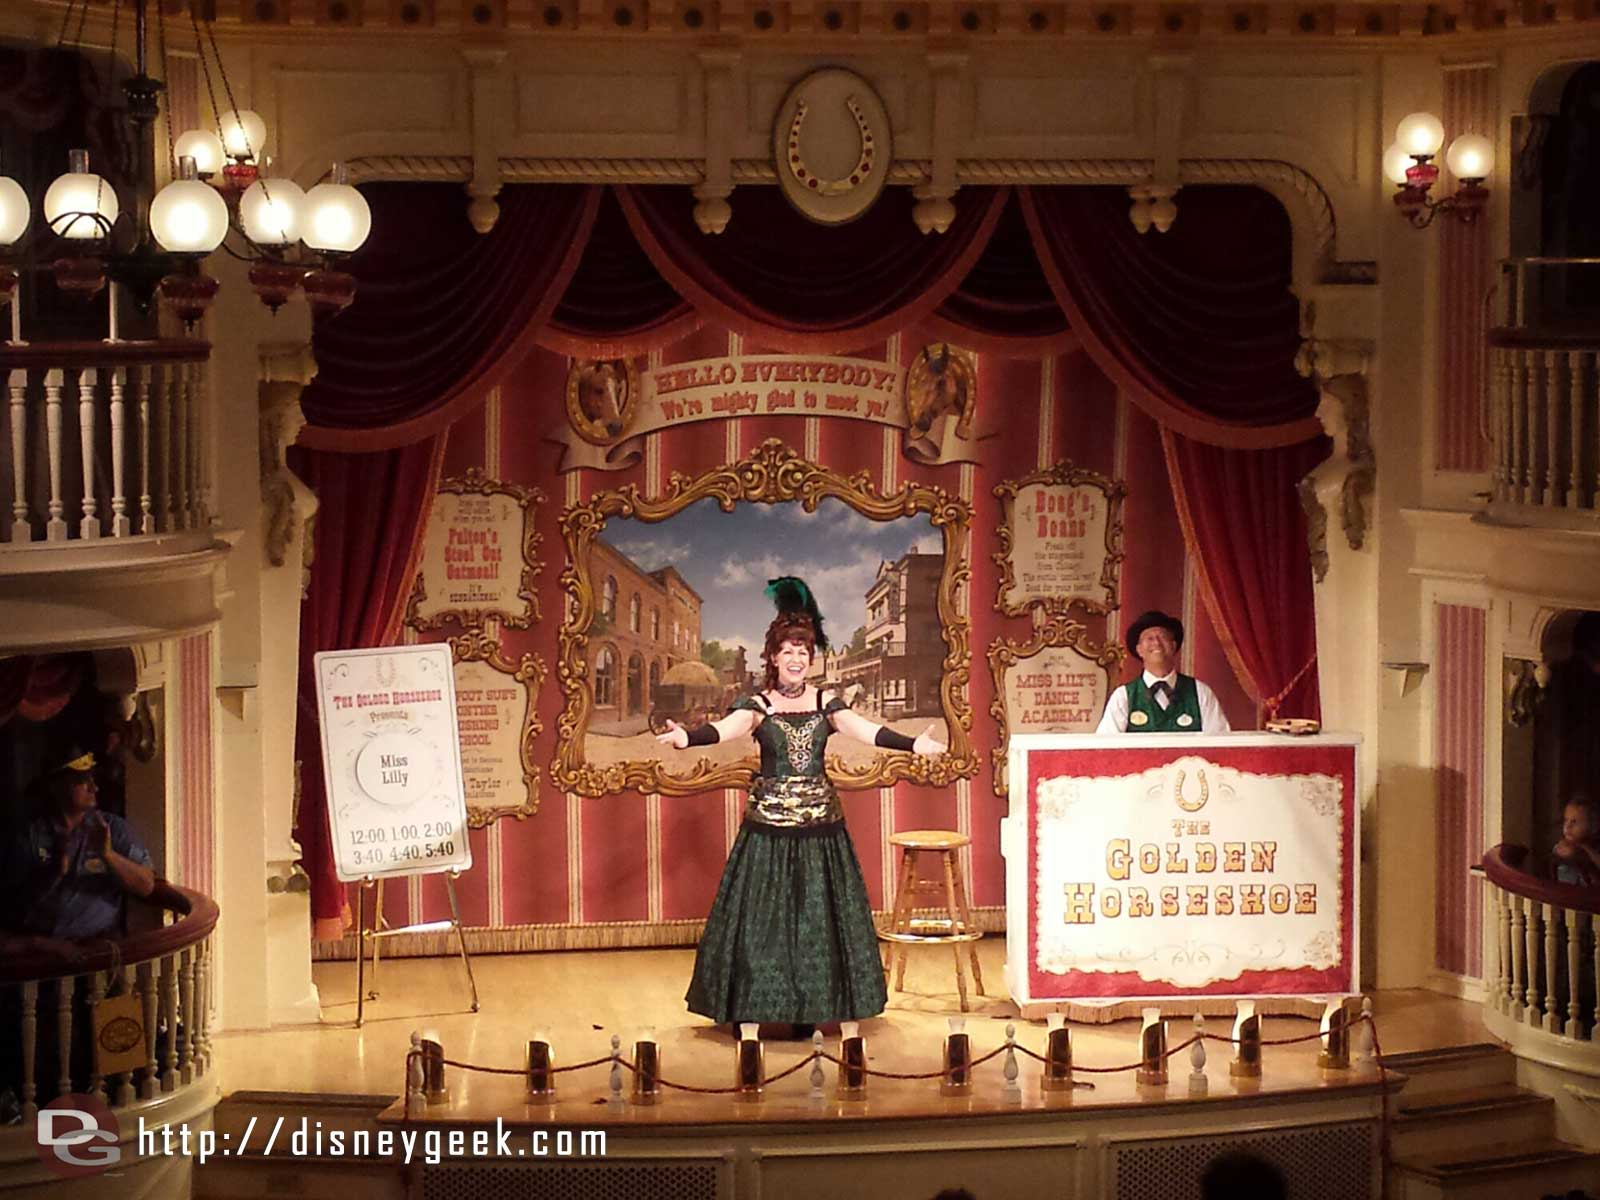 Stopped by the Golden Horseshoe, Miss Lilly was performing #Disneyland